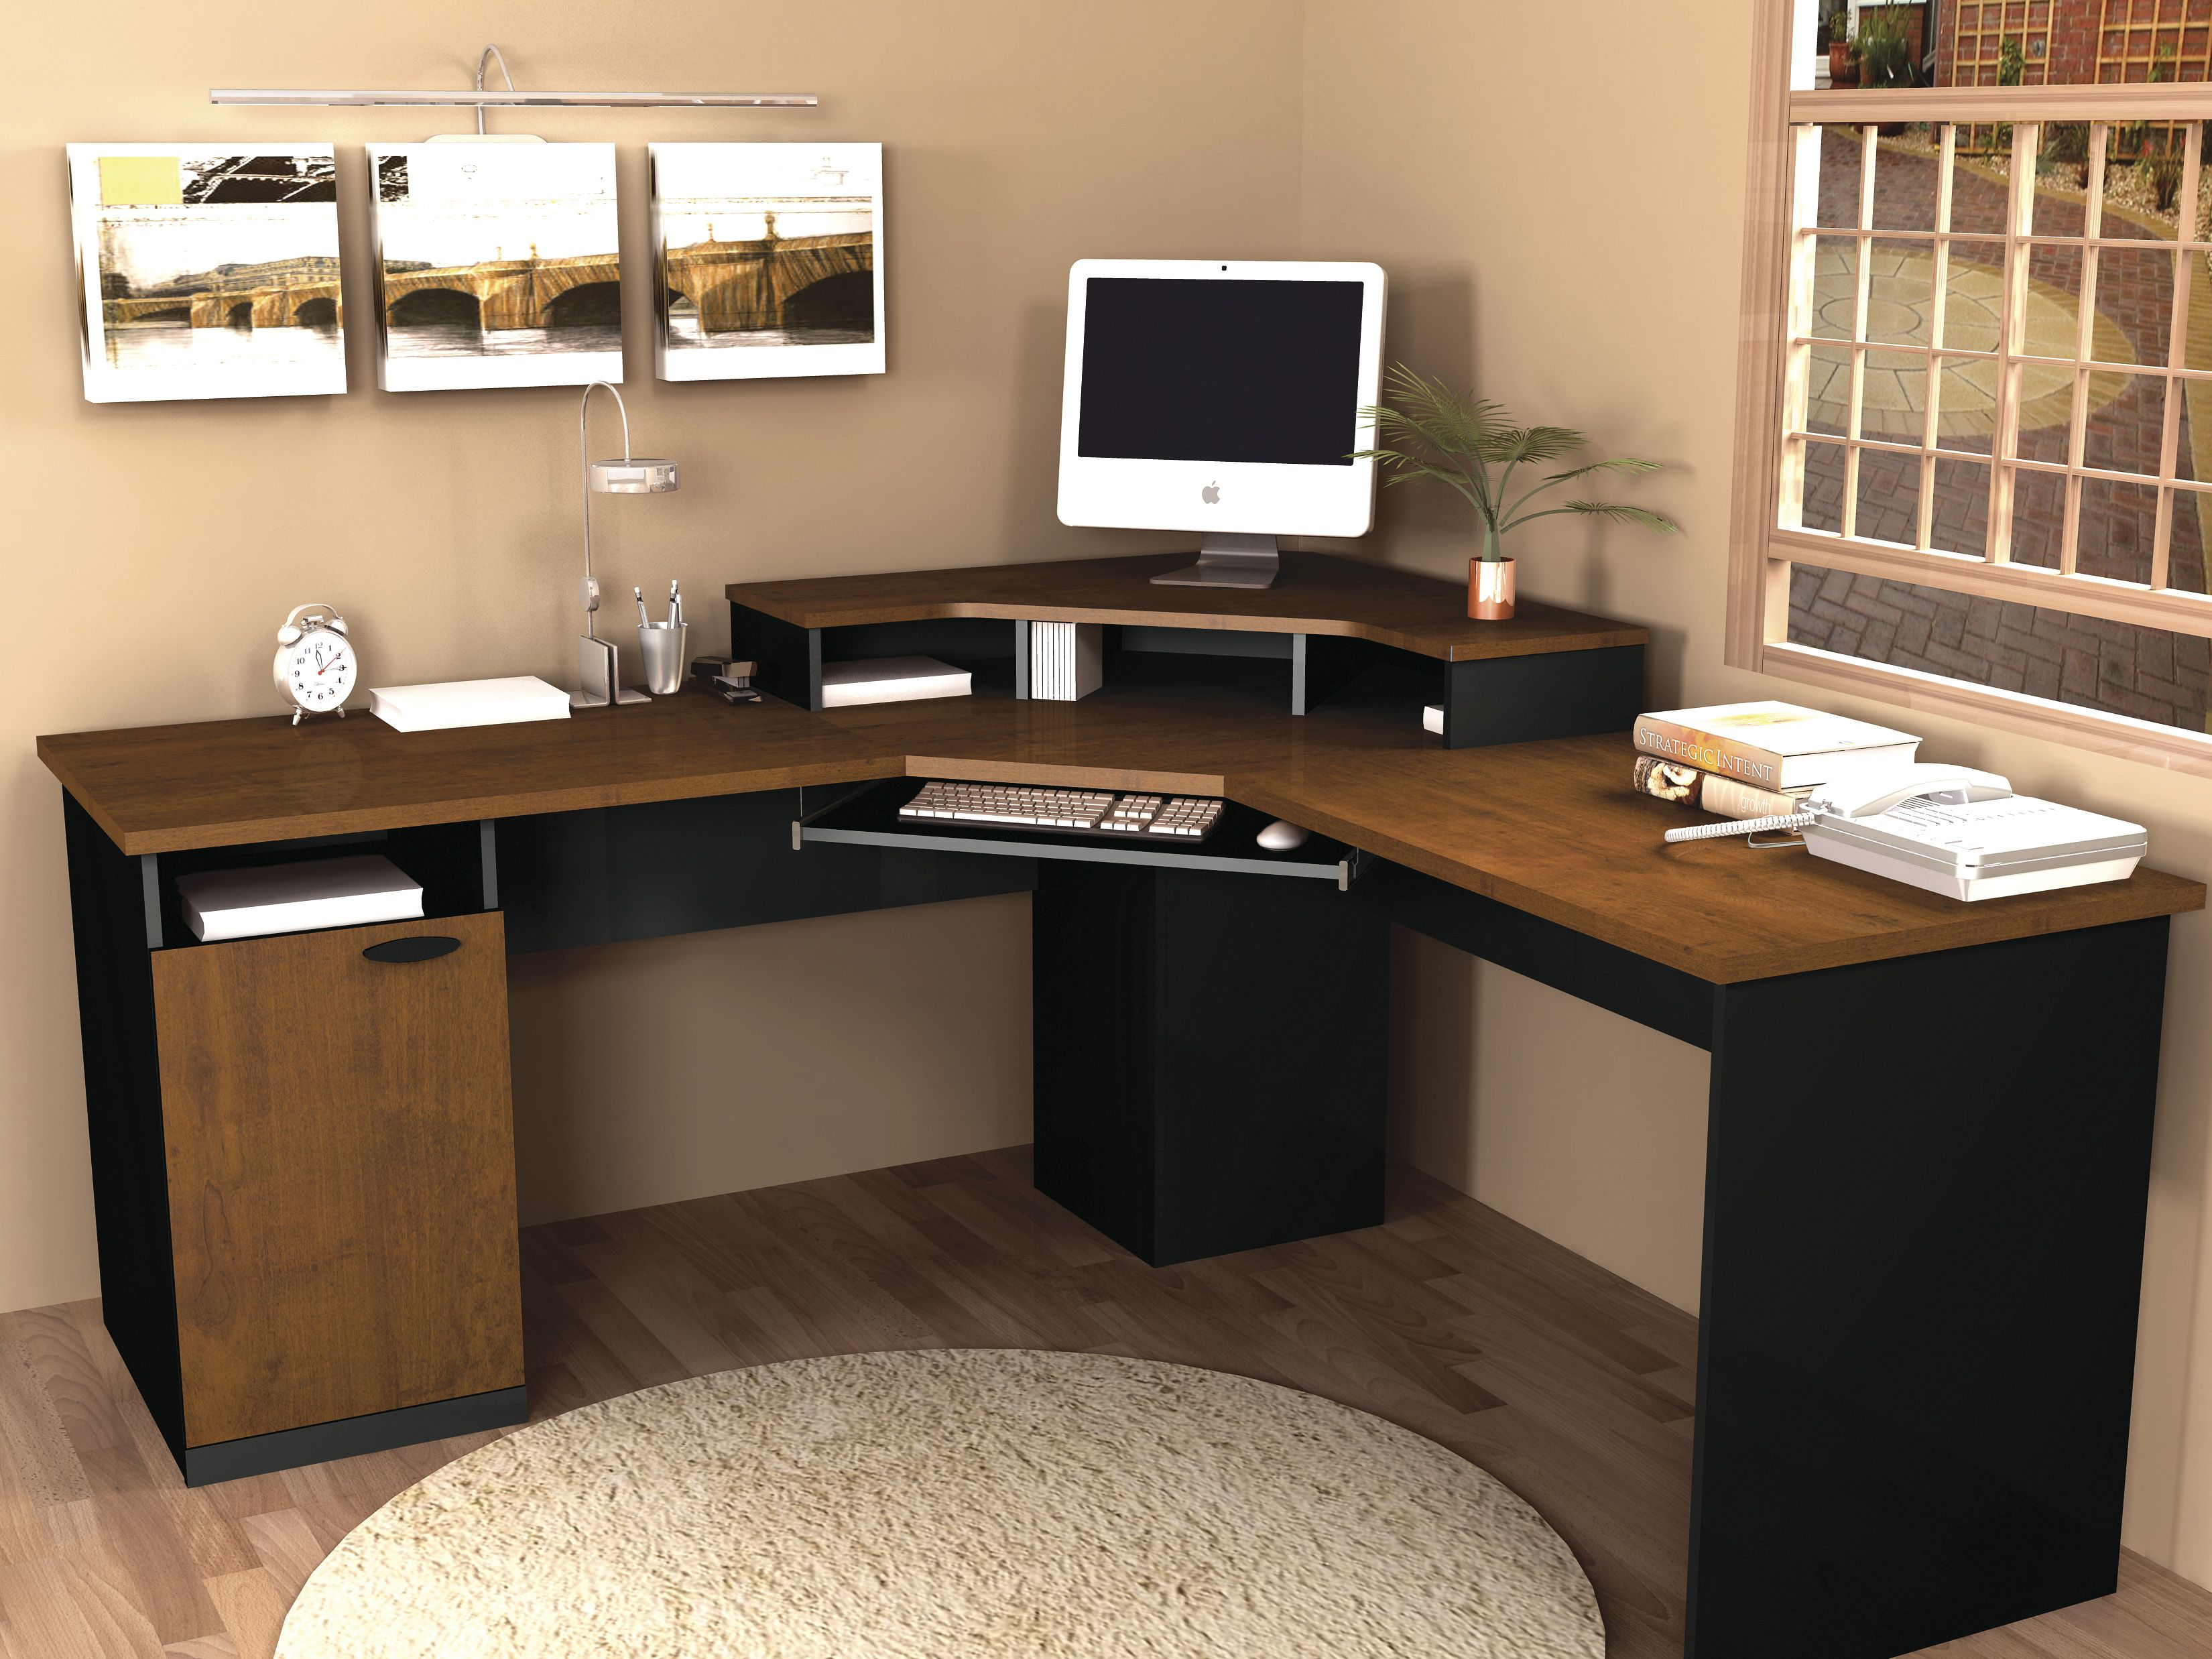 bestar hampton corner computer desk make the most of a small home office with the bestar hampton corner computer desktuscany brown u0026 black which tucks